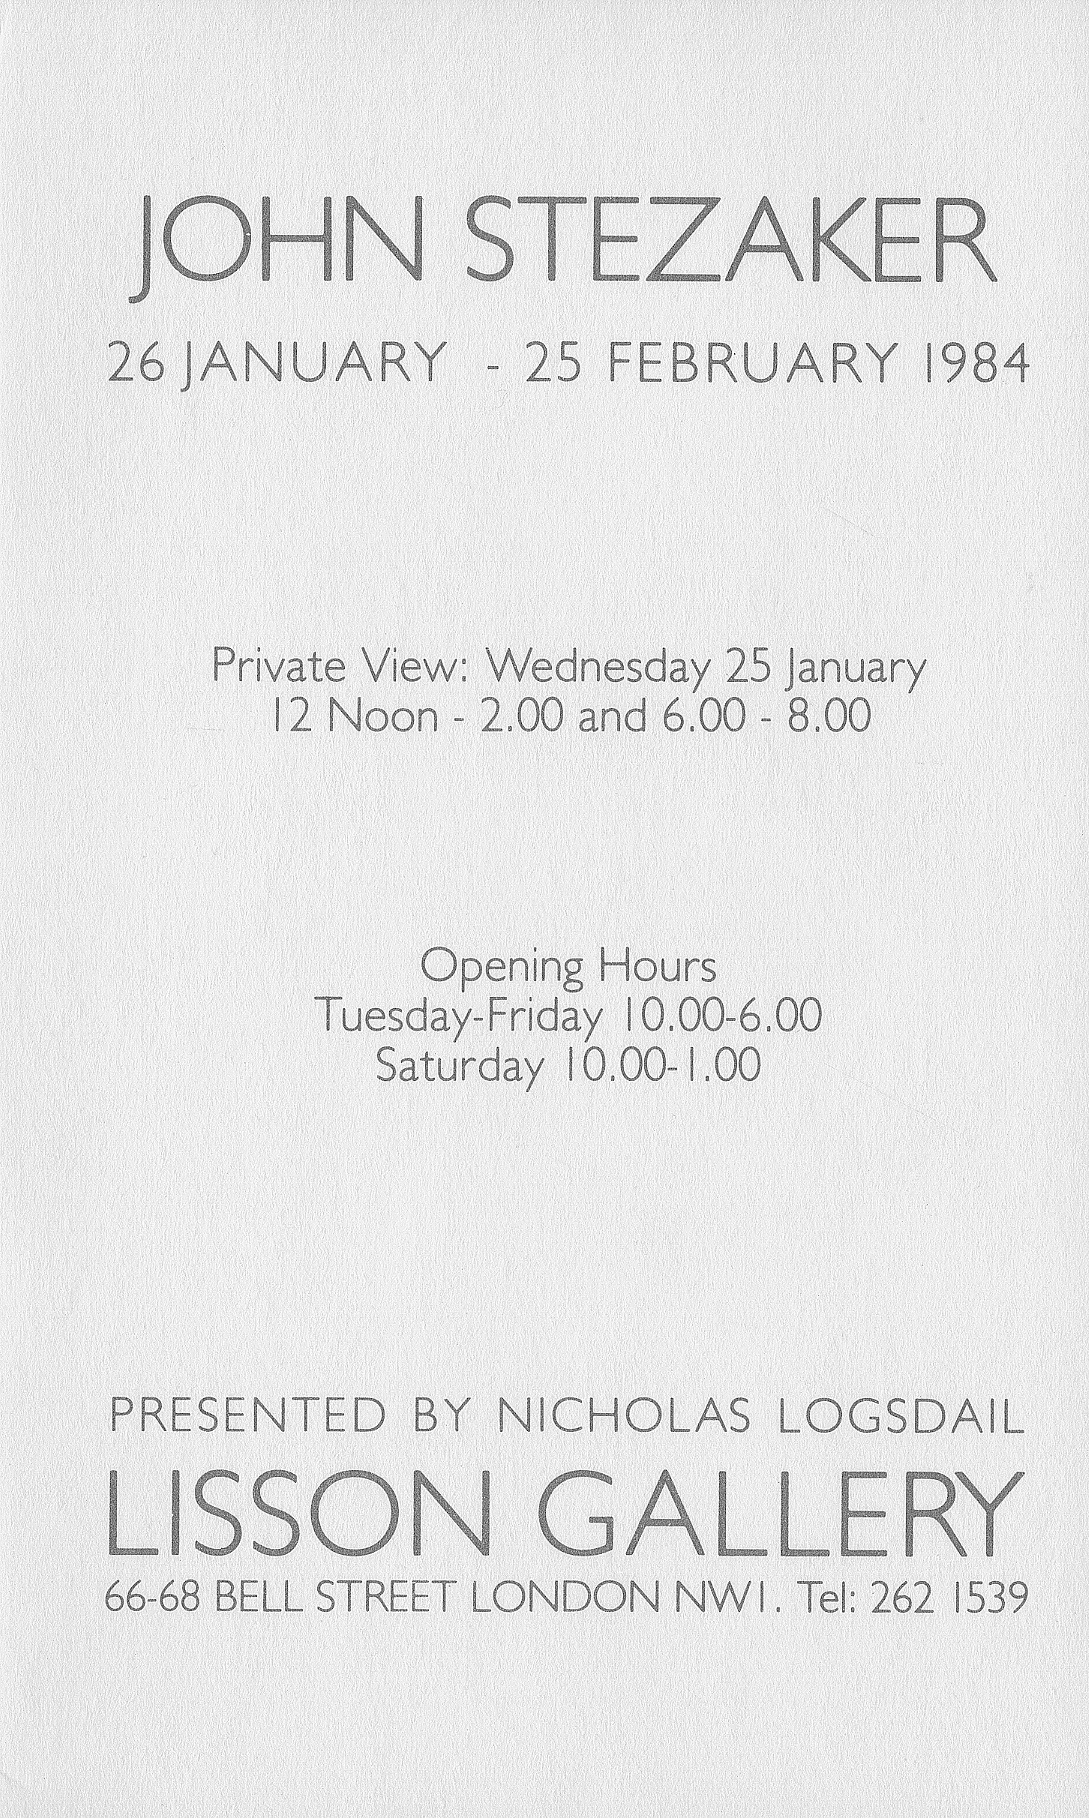 Stezaker invite 2 jan 1984 webedit